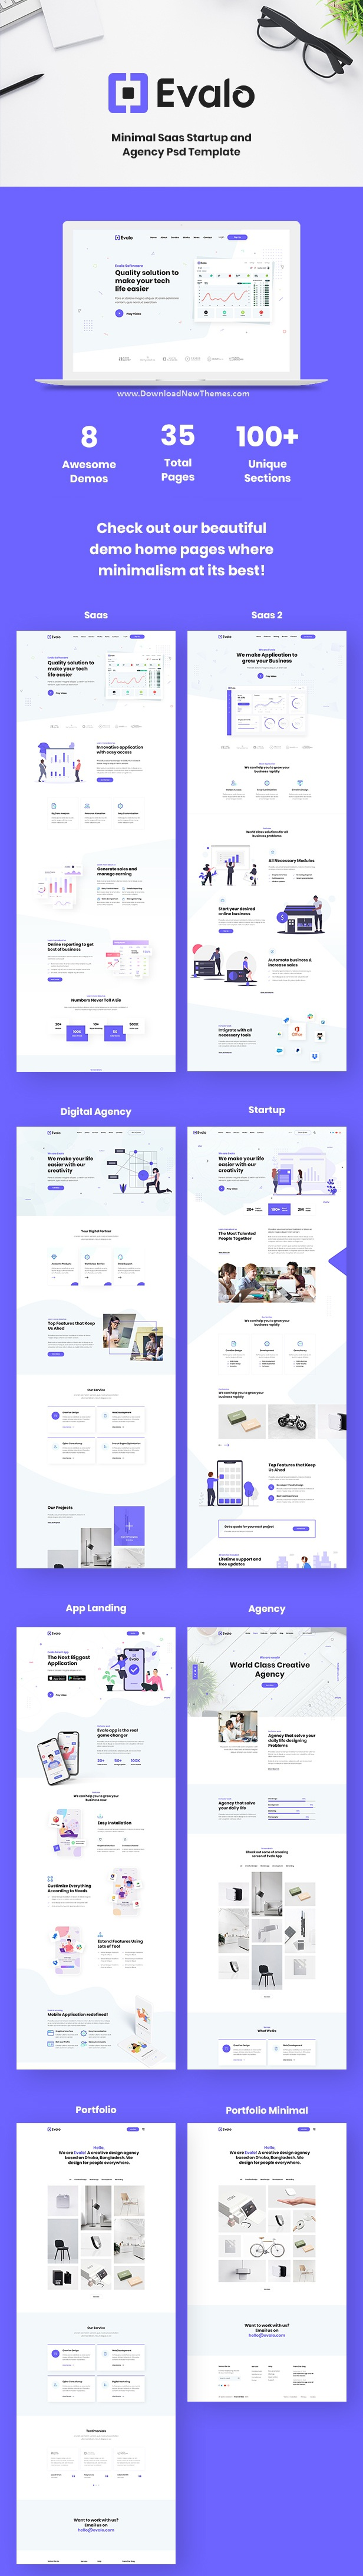 Saas Startup and Agency Website Template